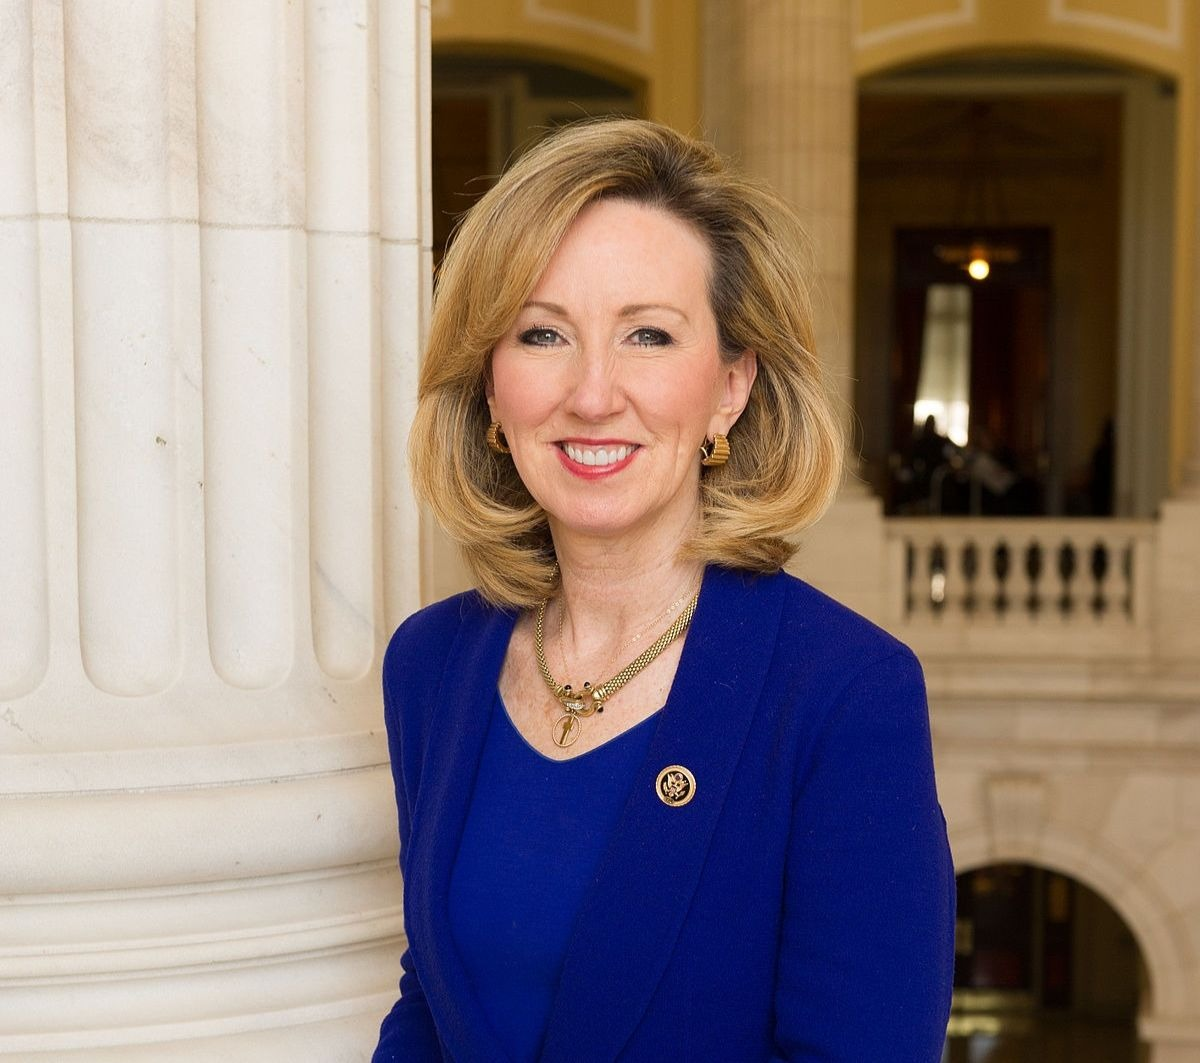 Watch: Former Congresswoman Barbara Comstock on Effective Lawmaking